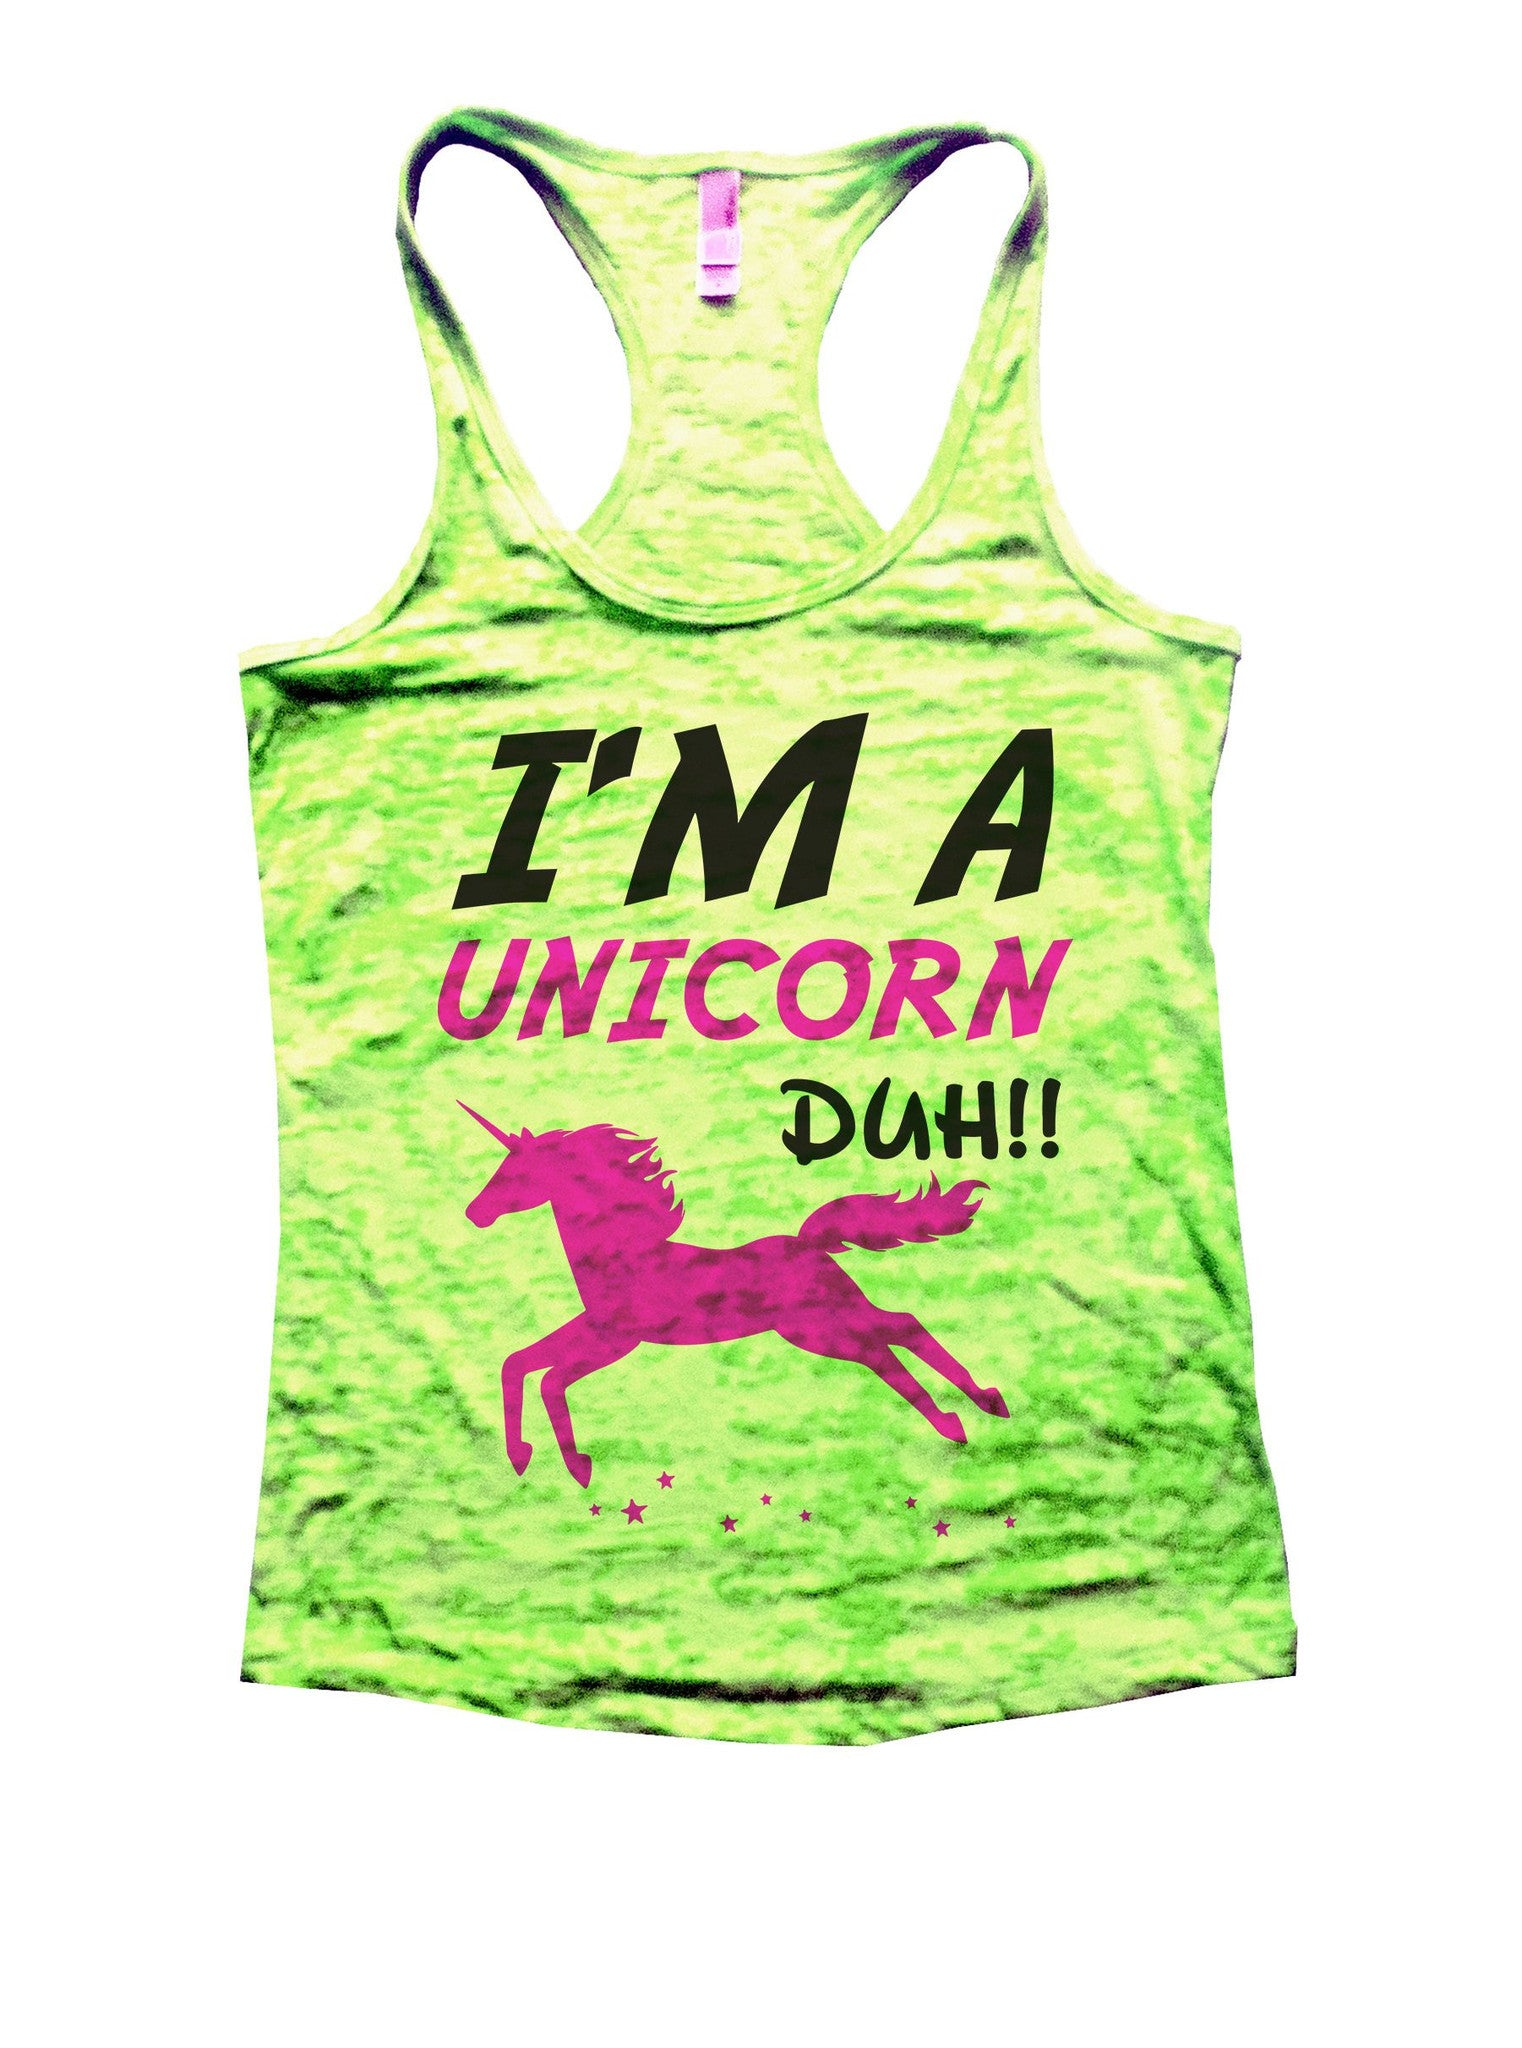 I'm A Unicorn Duh Burnout Tank Top By BurnoutTankTops.com - 795 - Funny Shirts Tank Tops Burnouts and Triblends  - 2